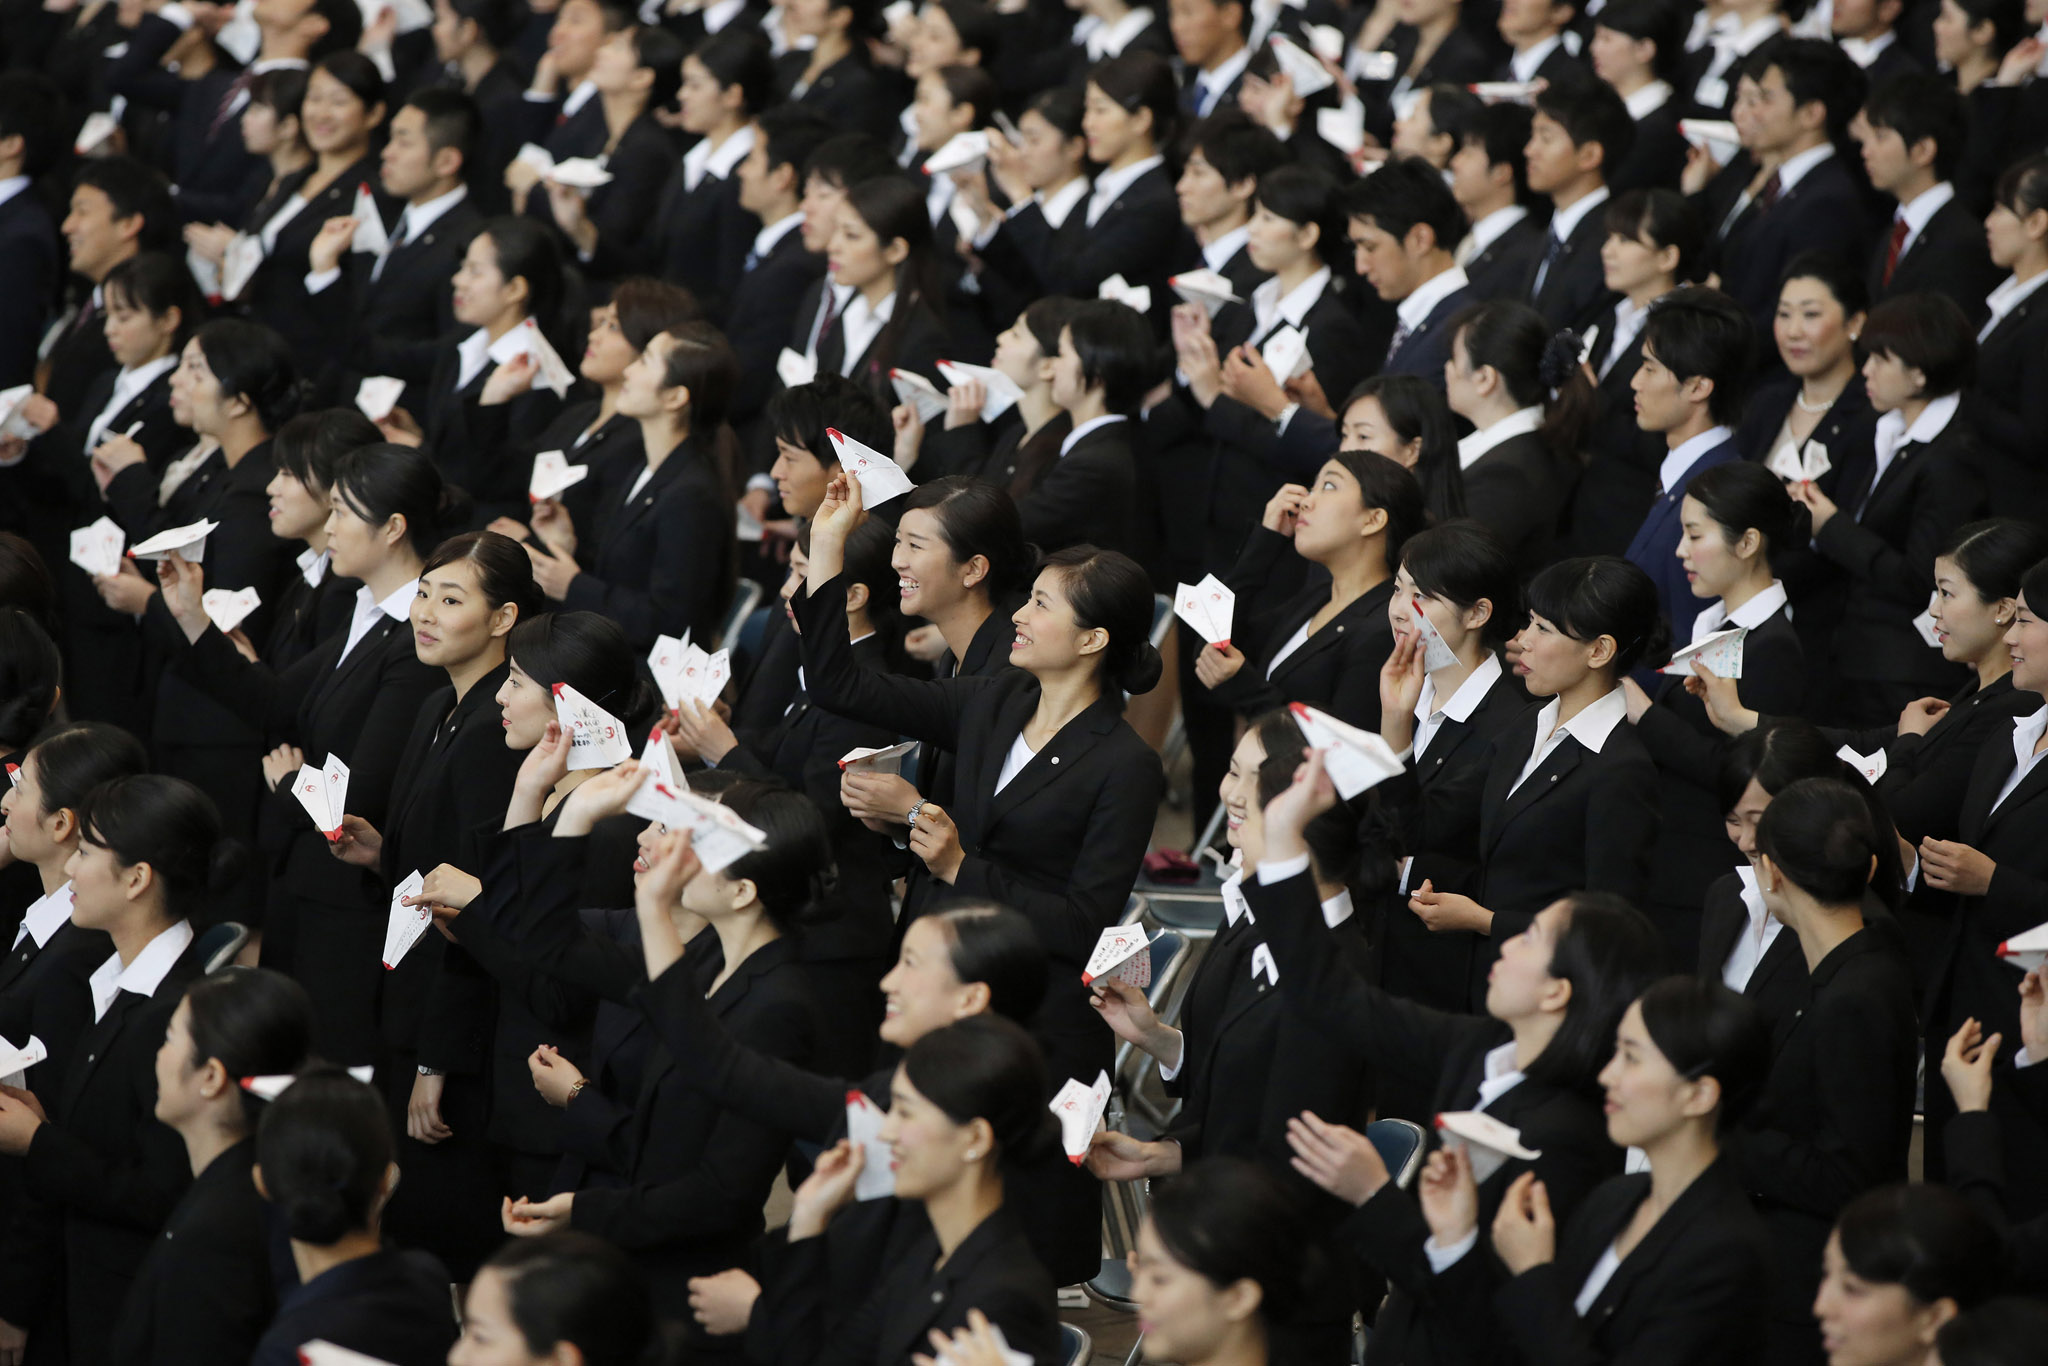 Japan Airlines Co. (JAL) group companies' new employees practice before releasing paper planes during an initiation ceremony at the company's hangar near Haneda Airport in Tokyo, Japan